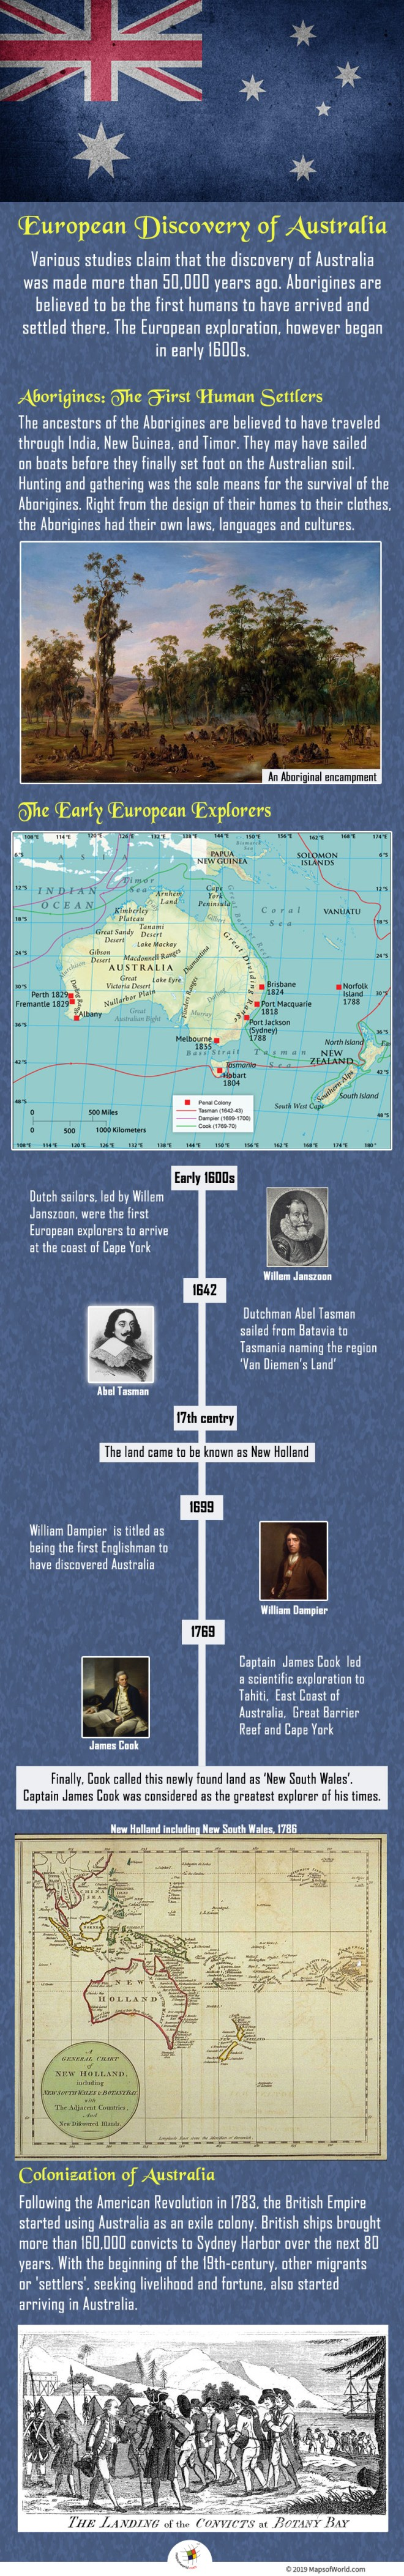 Infographic on Discovery of Australia